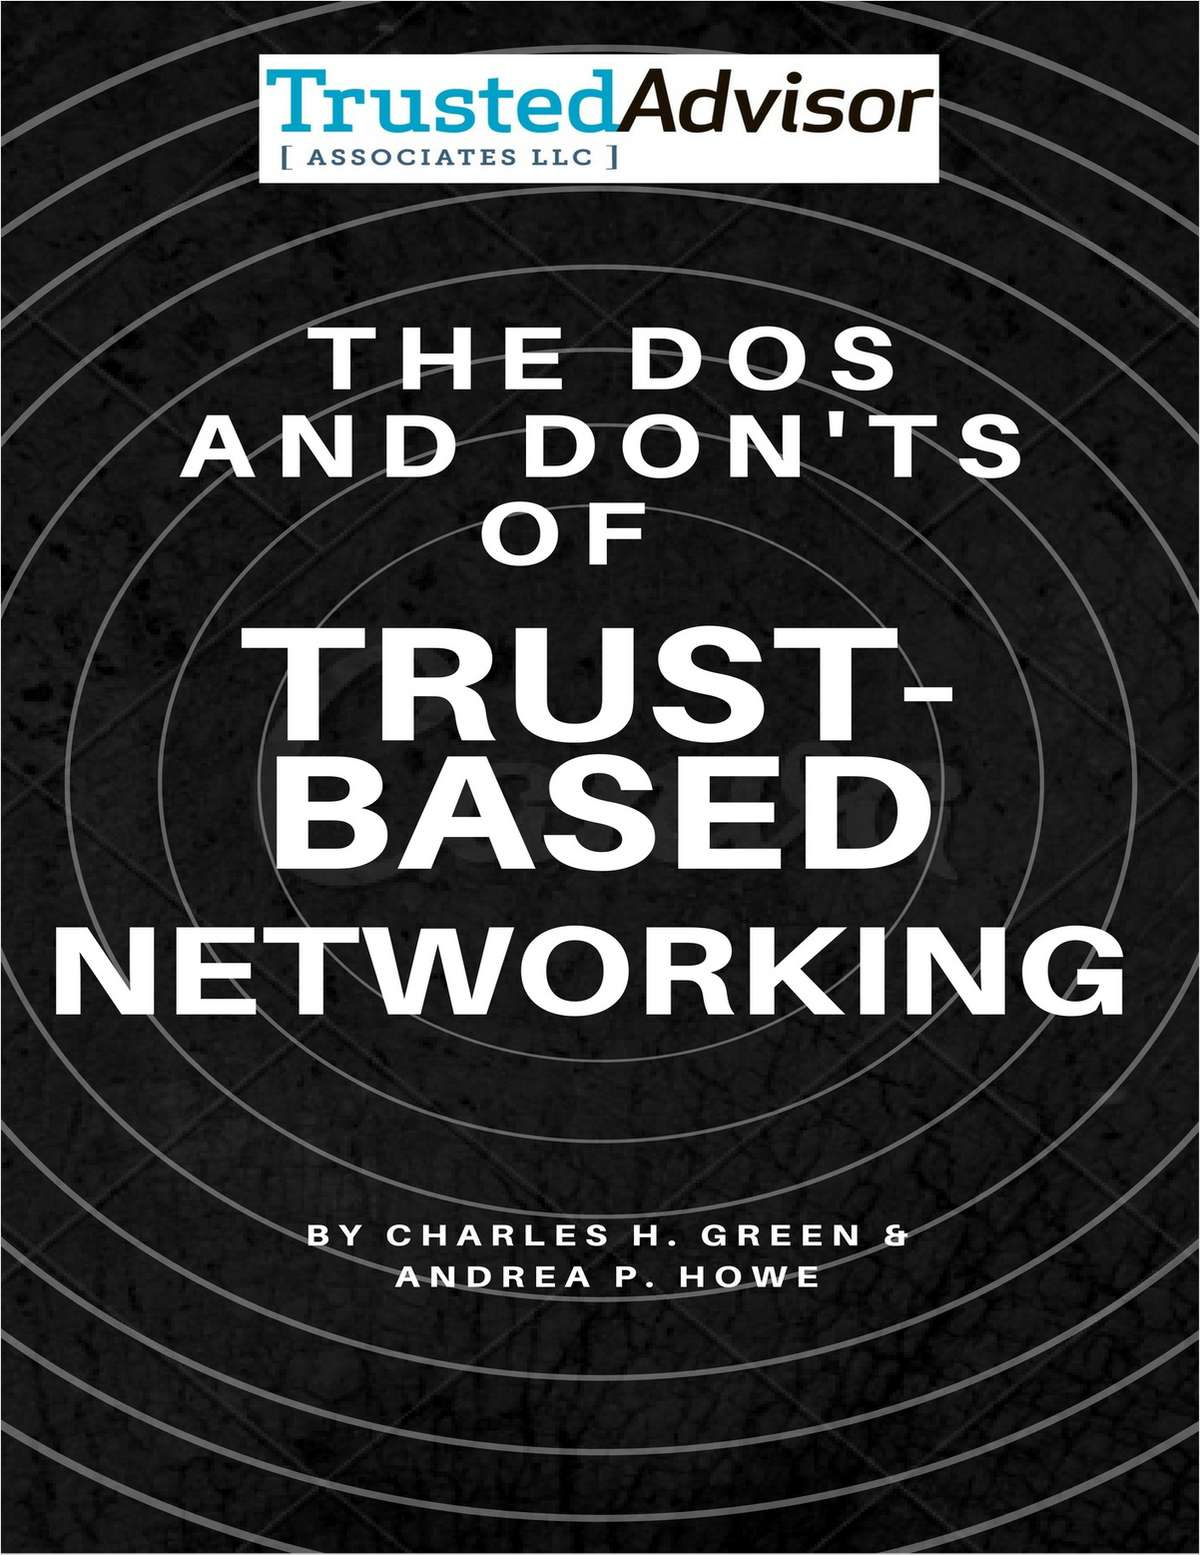 The Dos and Don'ts of Trust-Based Networking